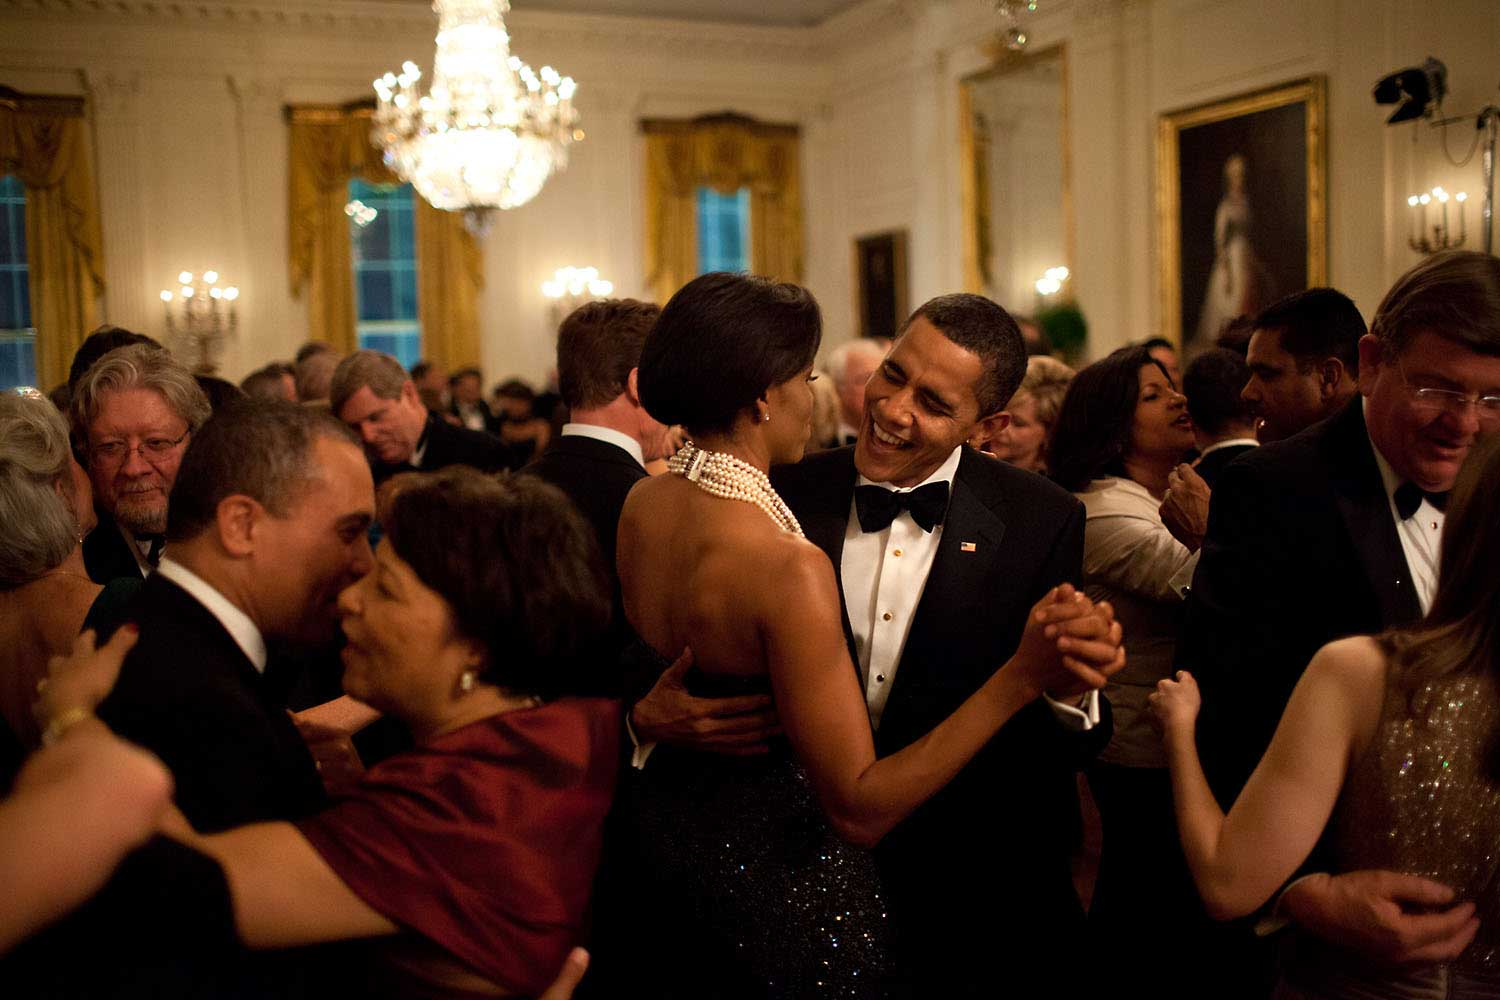 The President dances with his wife while singing along with the band Earth, Wind & Fire during the Governors Ball, his first formal function at the White House, on Feb. 22, 2009